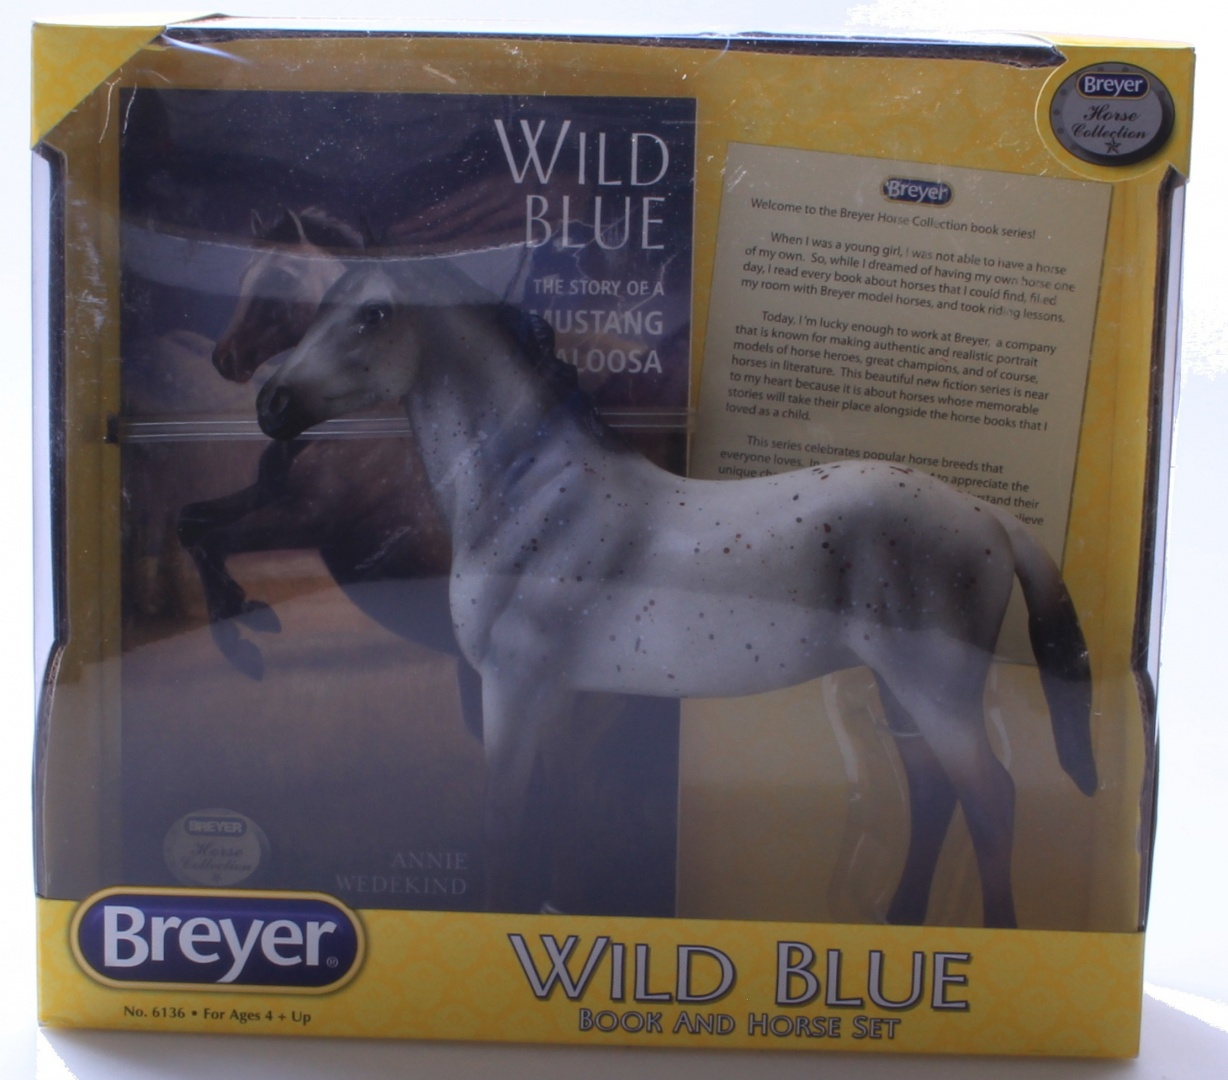 Breyer Horse Figurine And Book Set Wild Blue By Breyer Shop Online For Toys In New Zealand